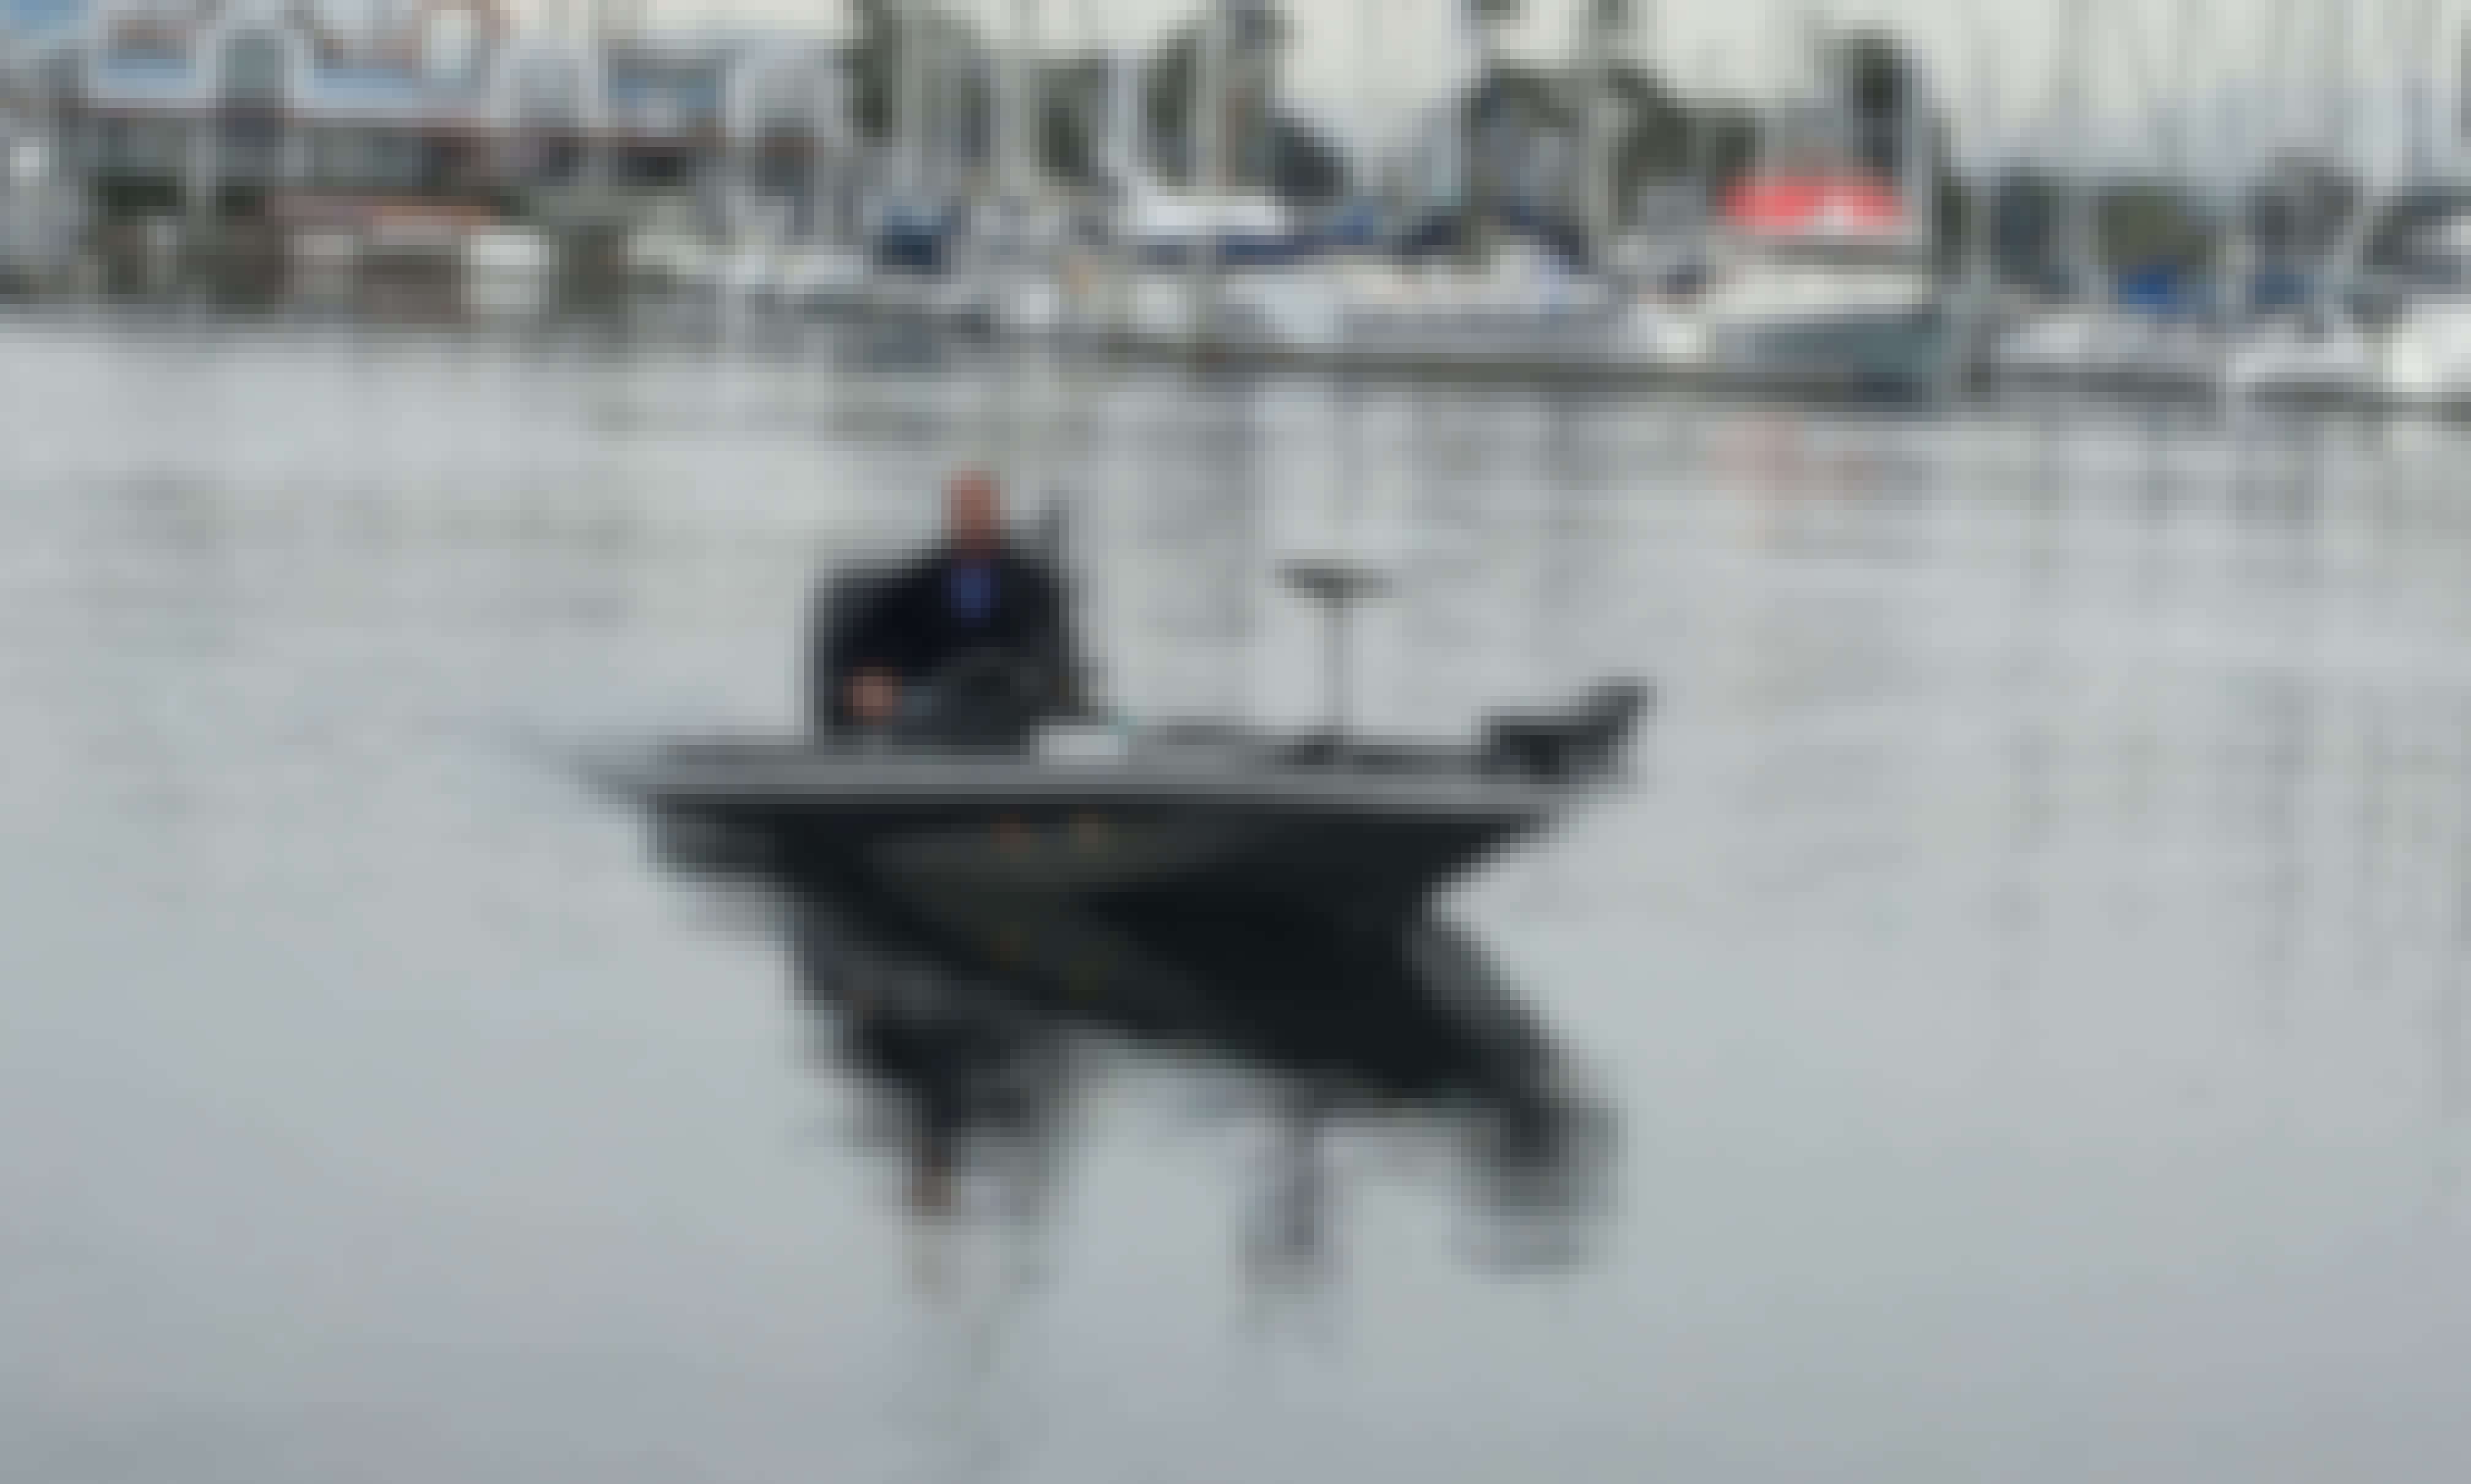 16' Cajun Bass Boat for Rent in San Diego, California!